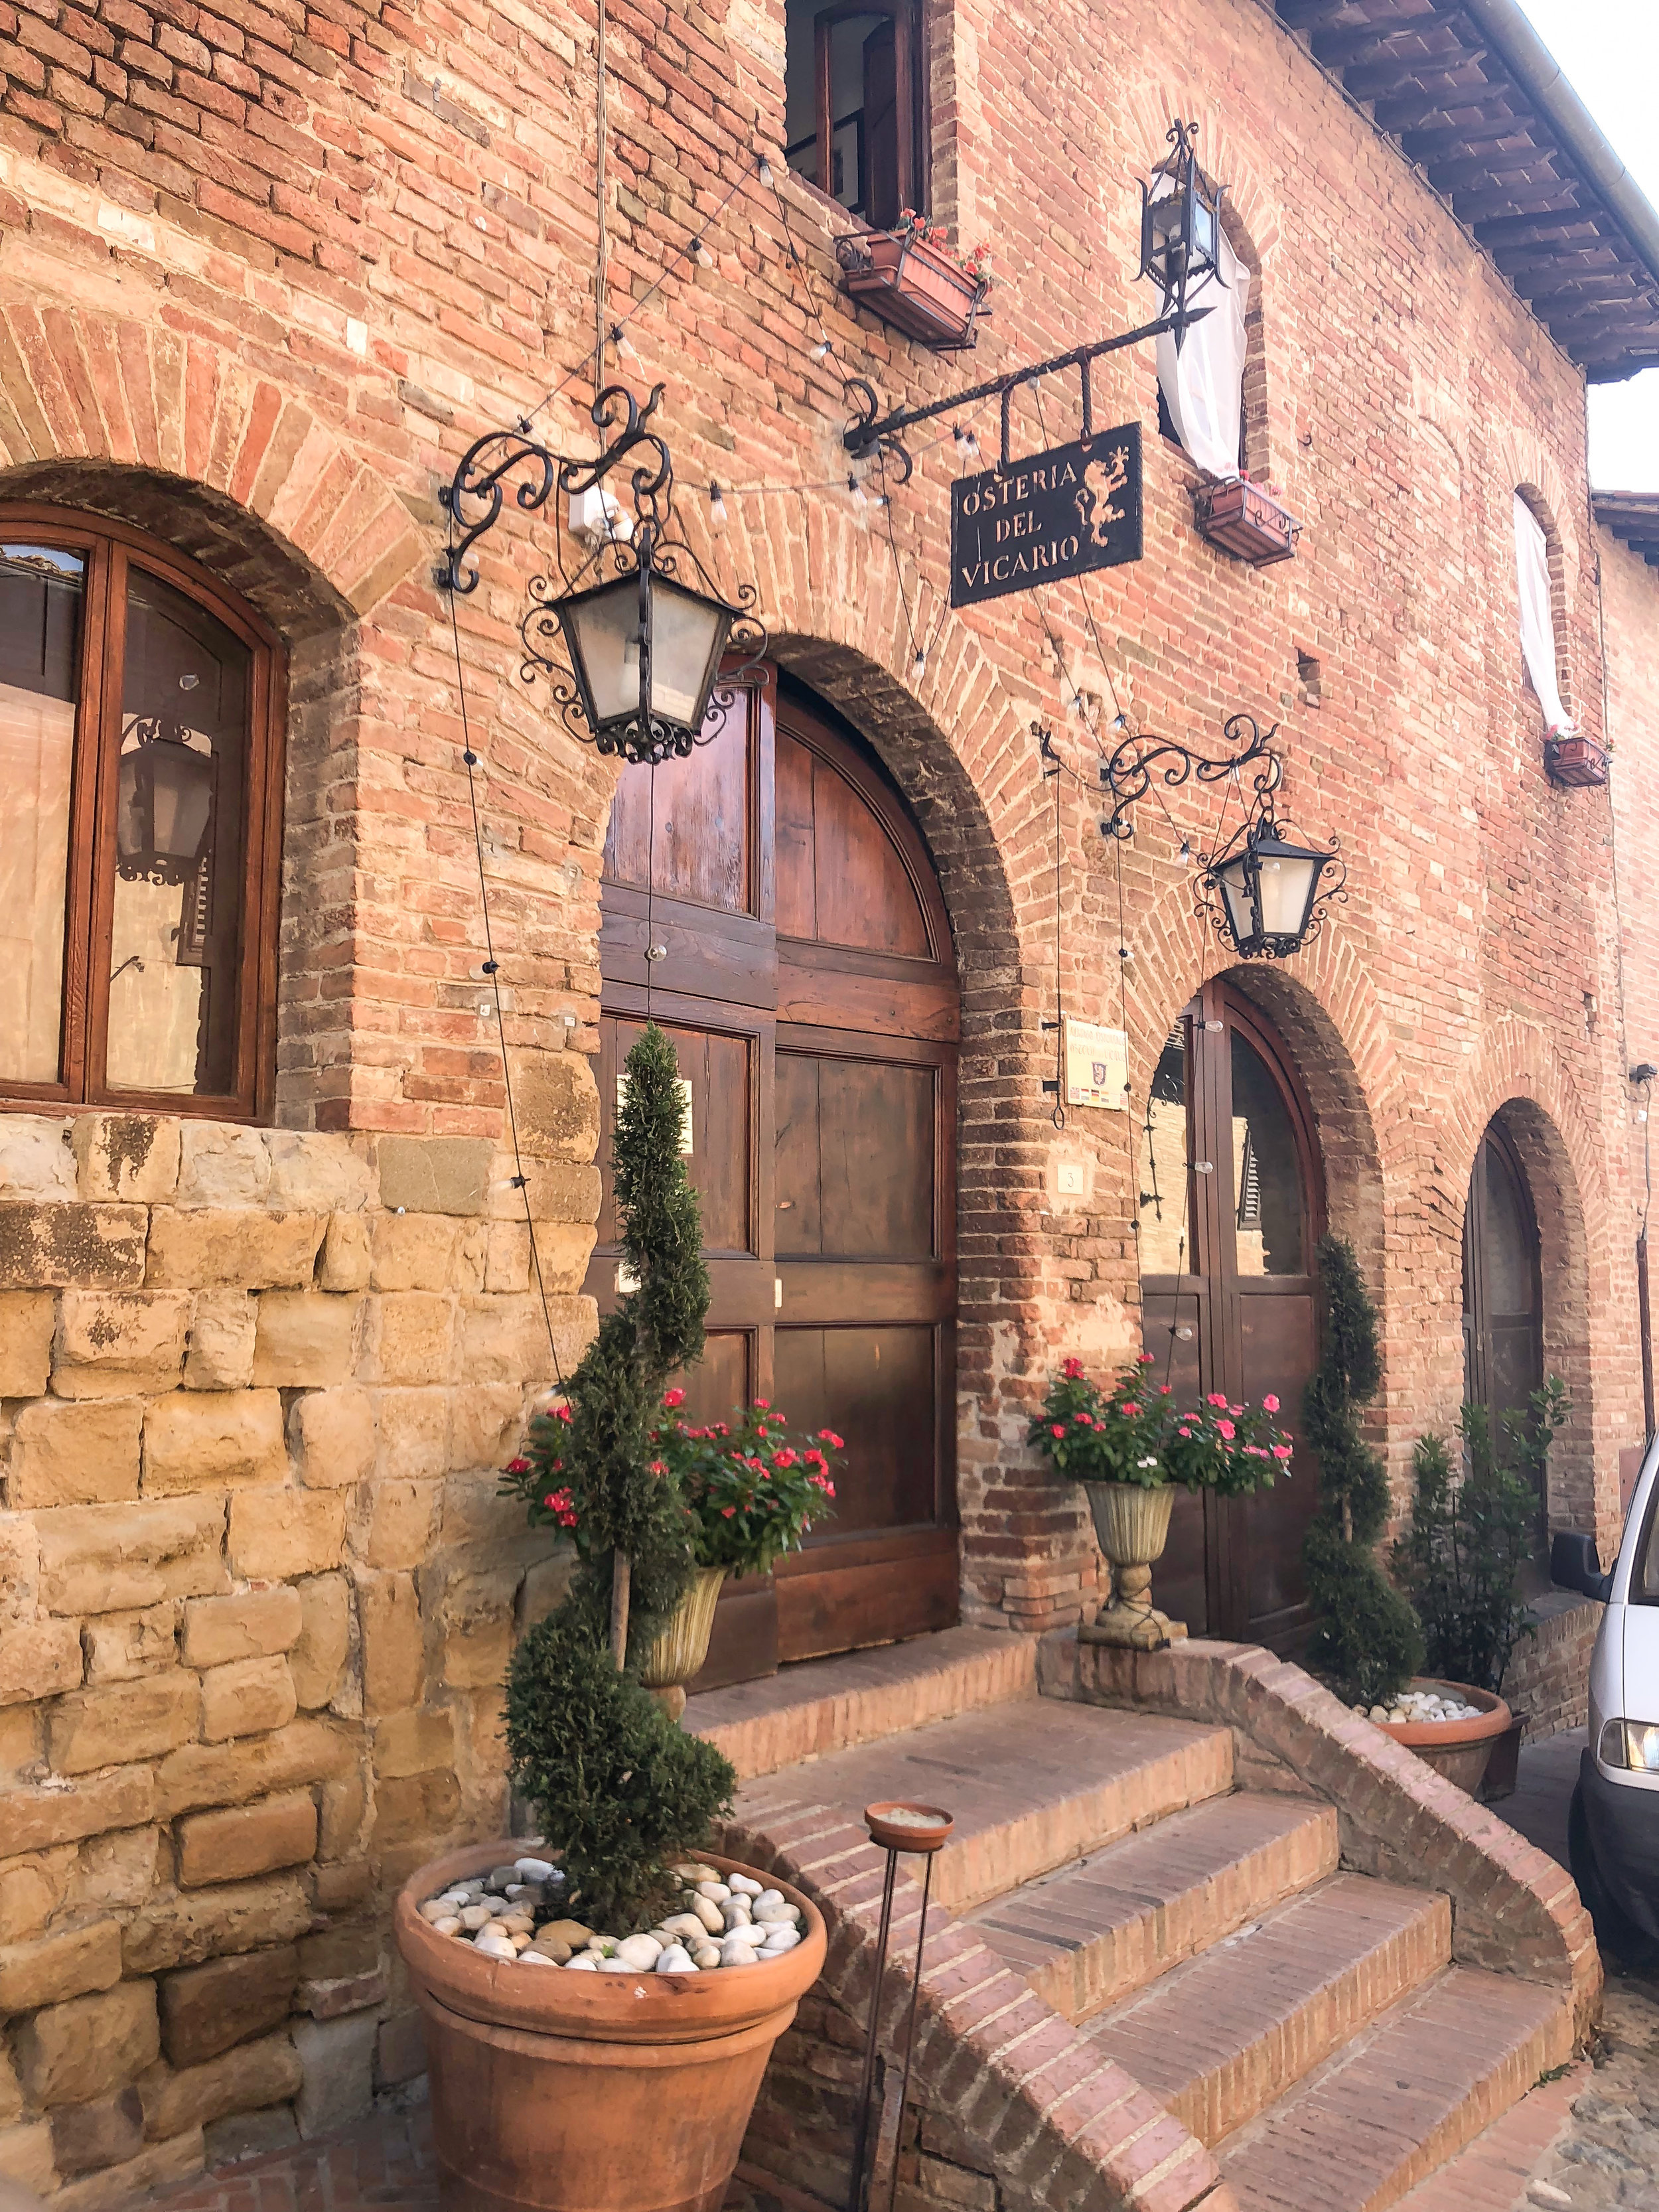 osteria, certaldo. THE ENTIRE VILLAGE IS PRETTY MUCH IS A POSTCARD.